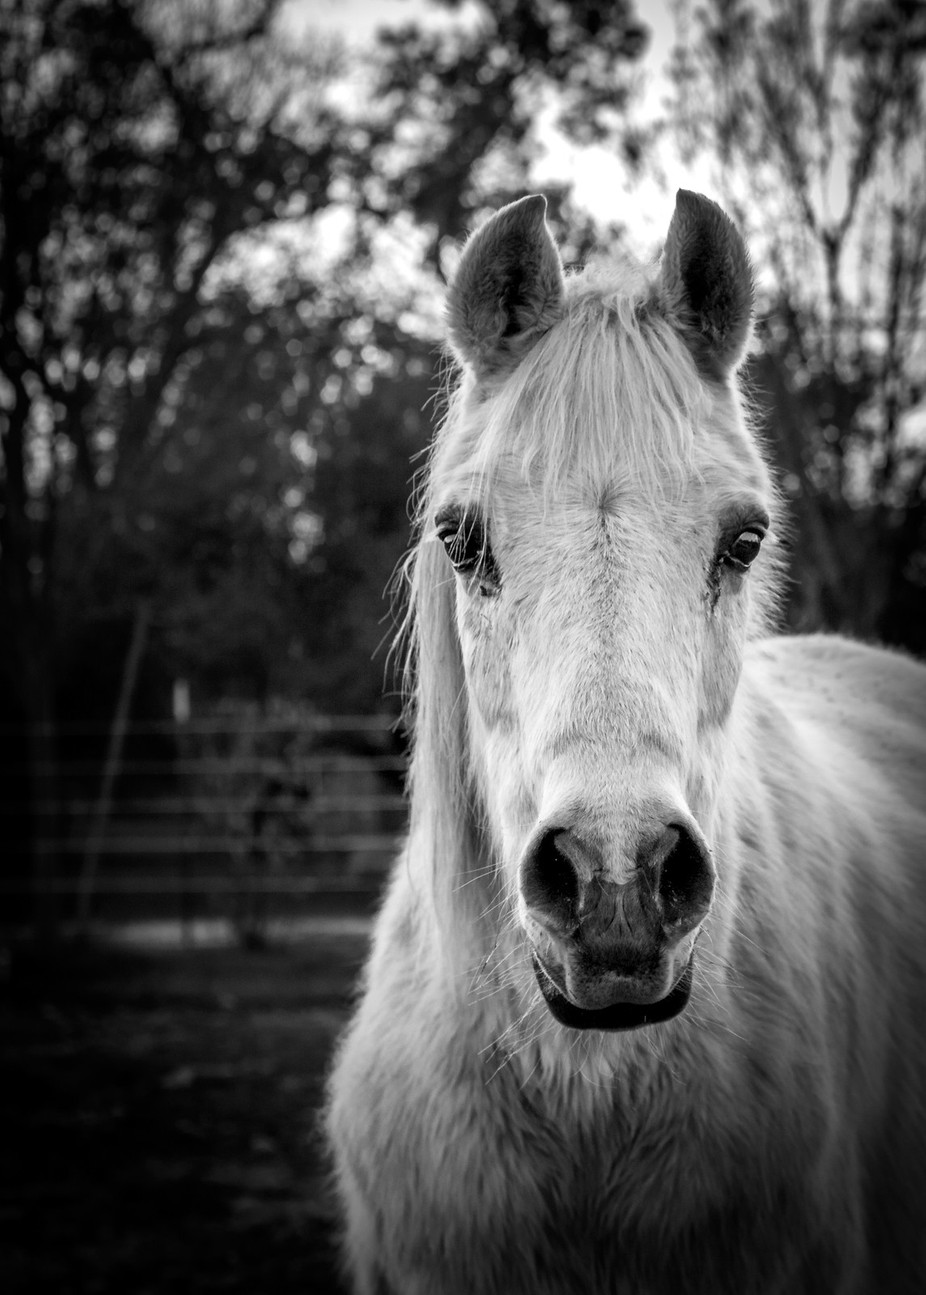 Pharroh by Jamie235 - Animals In Black And White Photo Contest